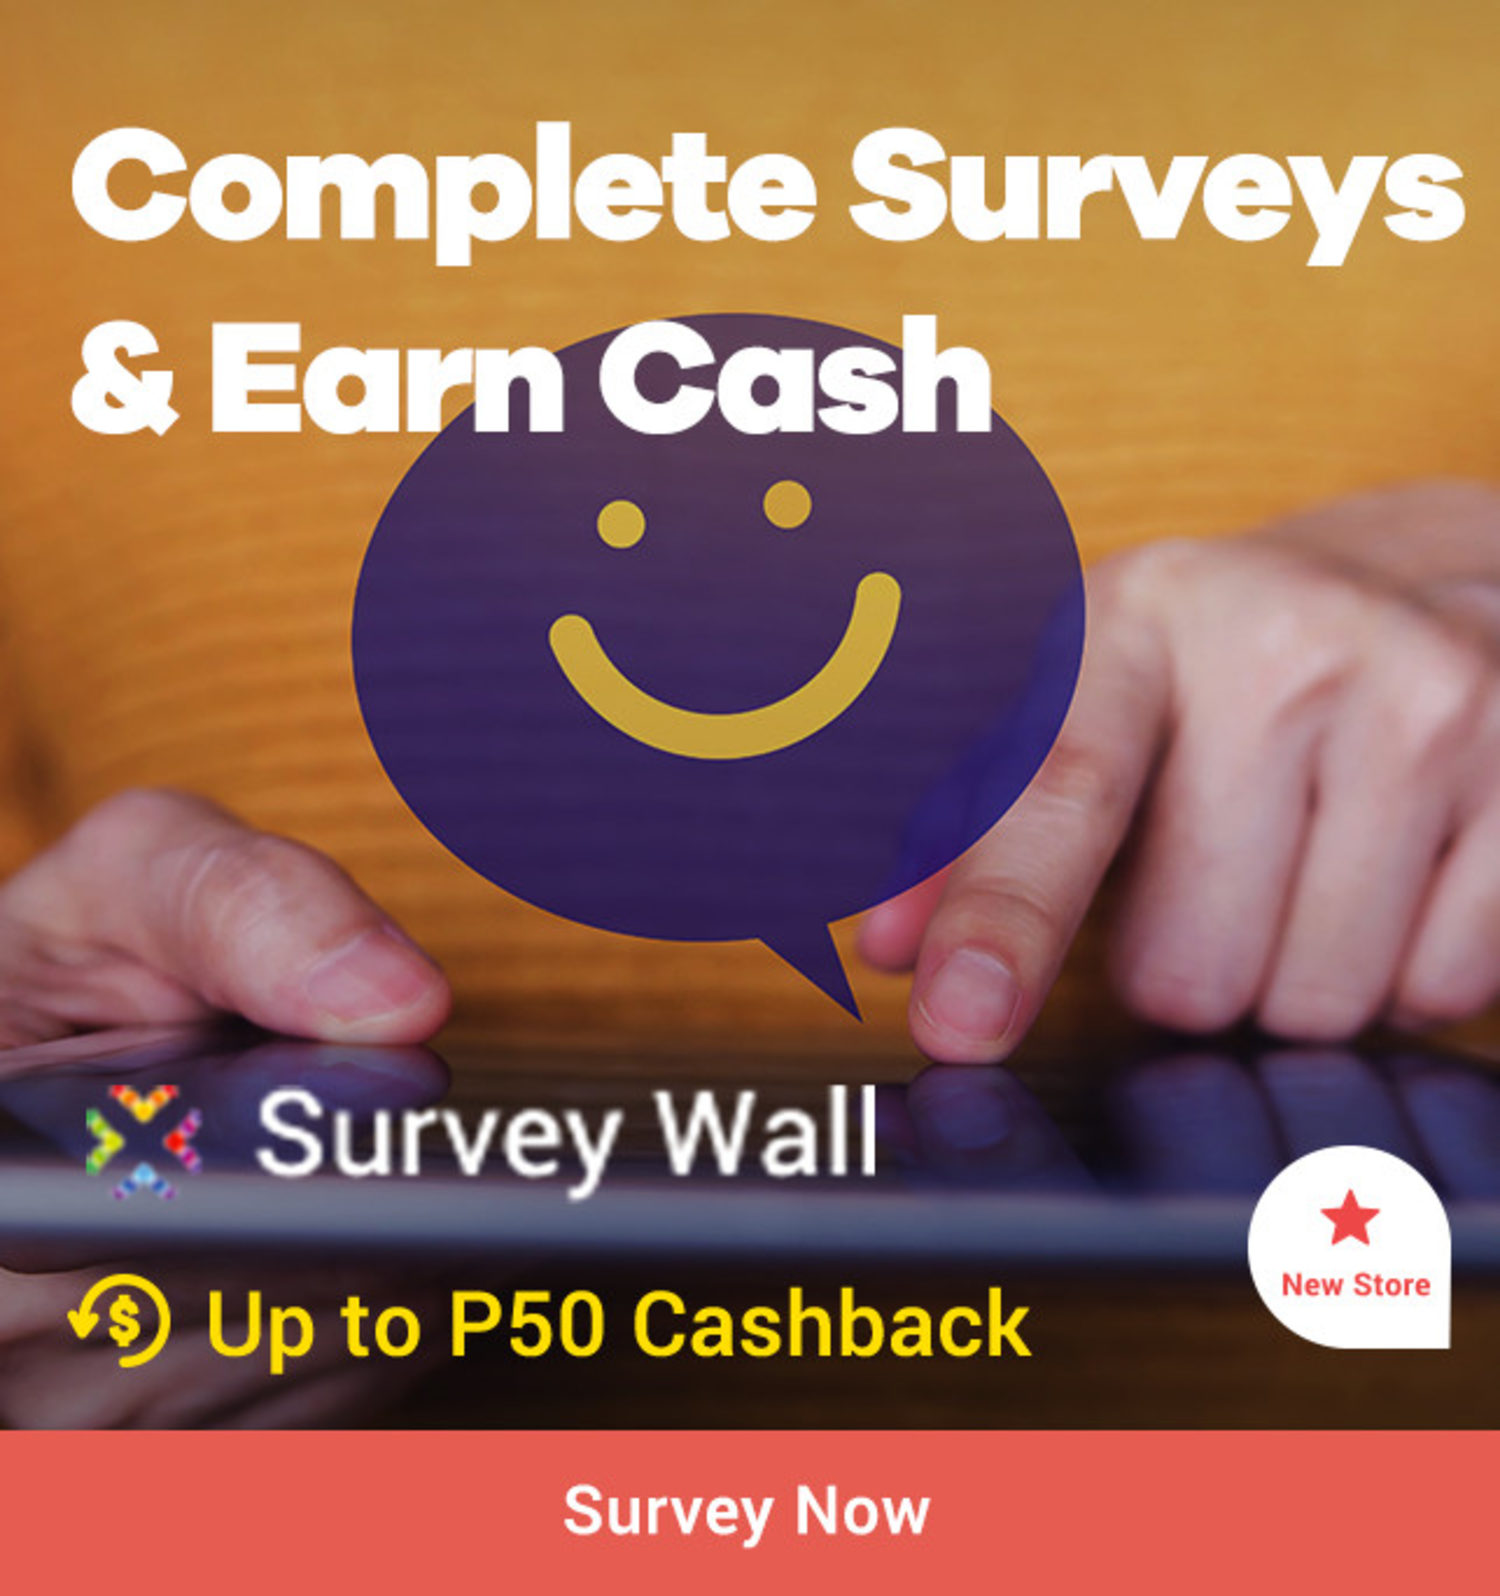 Survey Wall: Complete Surveys & Earn Cash